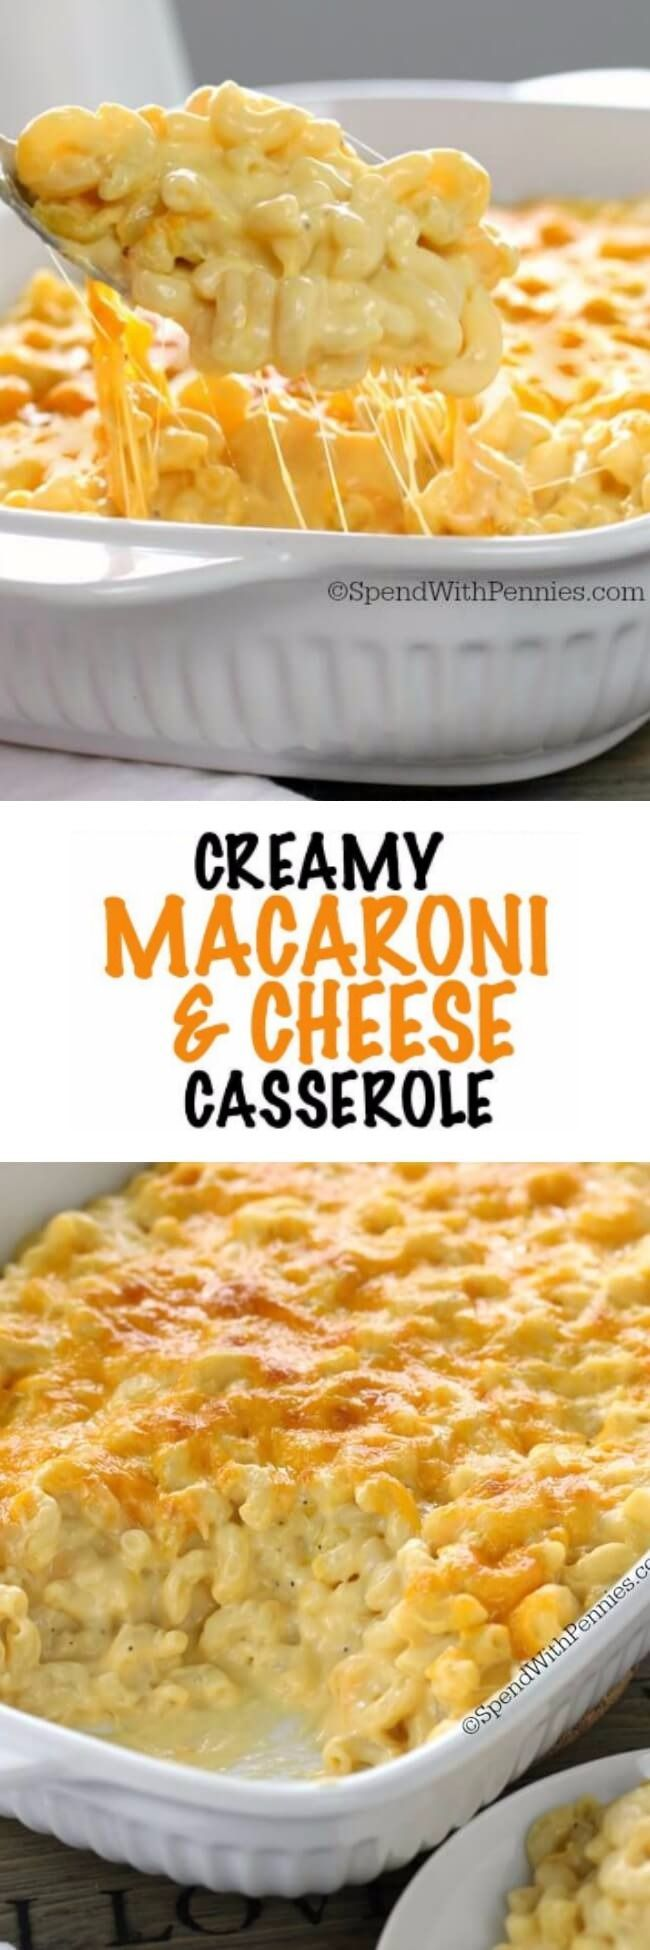 This Creamy Macaroni and Cheese Casserole is a show stopper! Not only is this mac and cheese recipe easy to make it has a special ingredient making it extra delicious!  This dish has so much velvety cheese in a quick homemade sauce